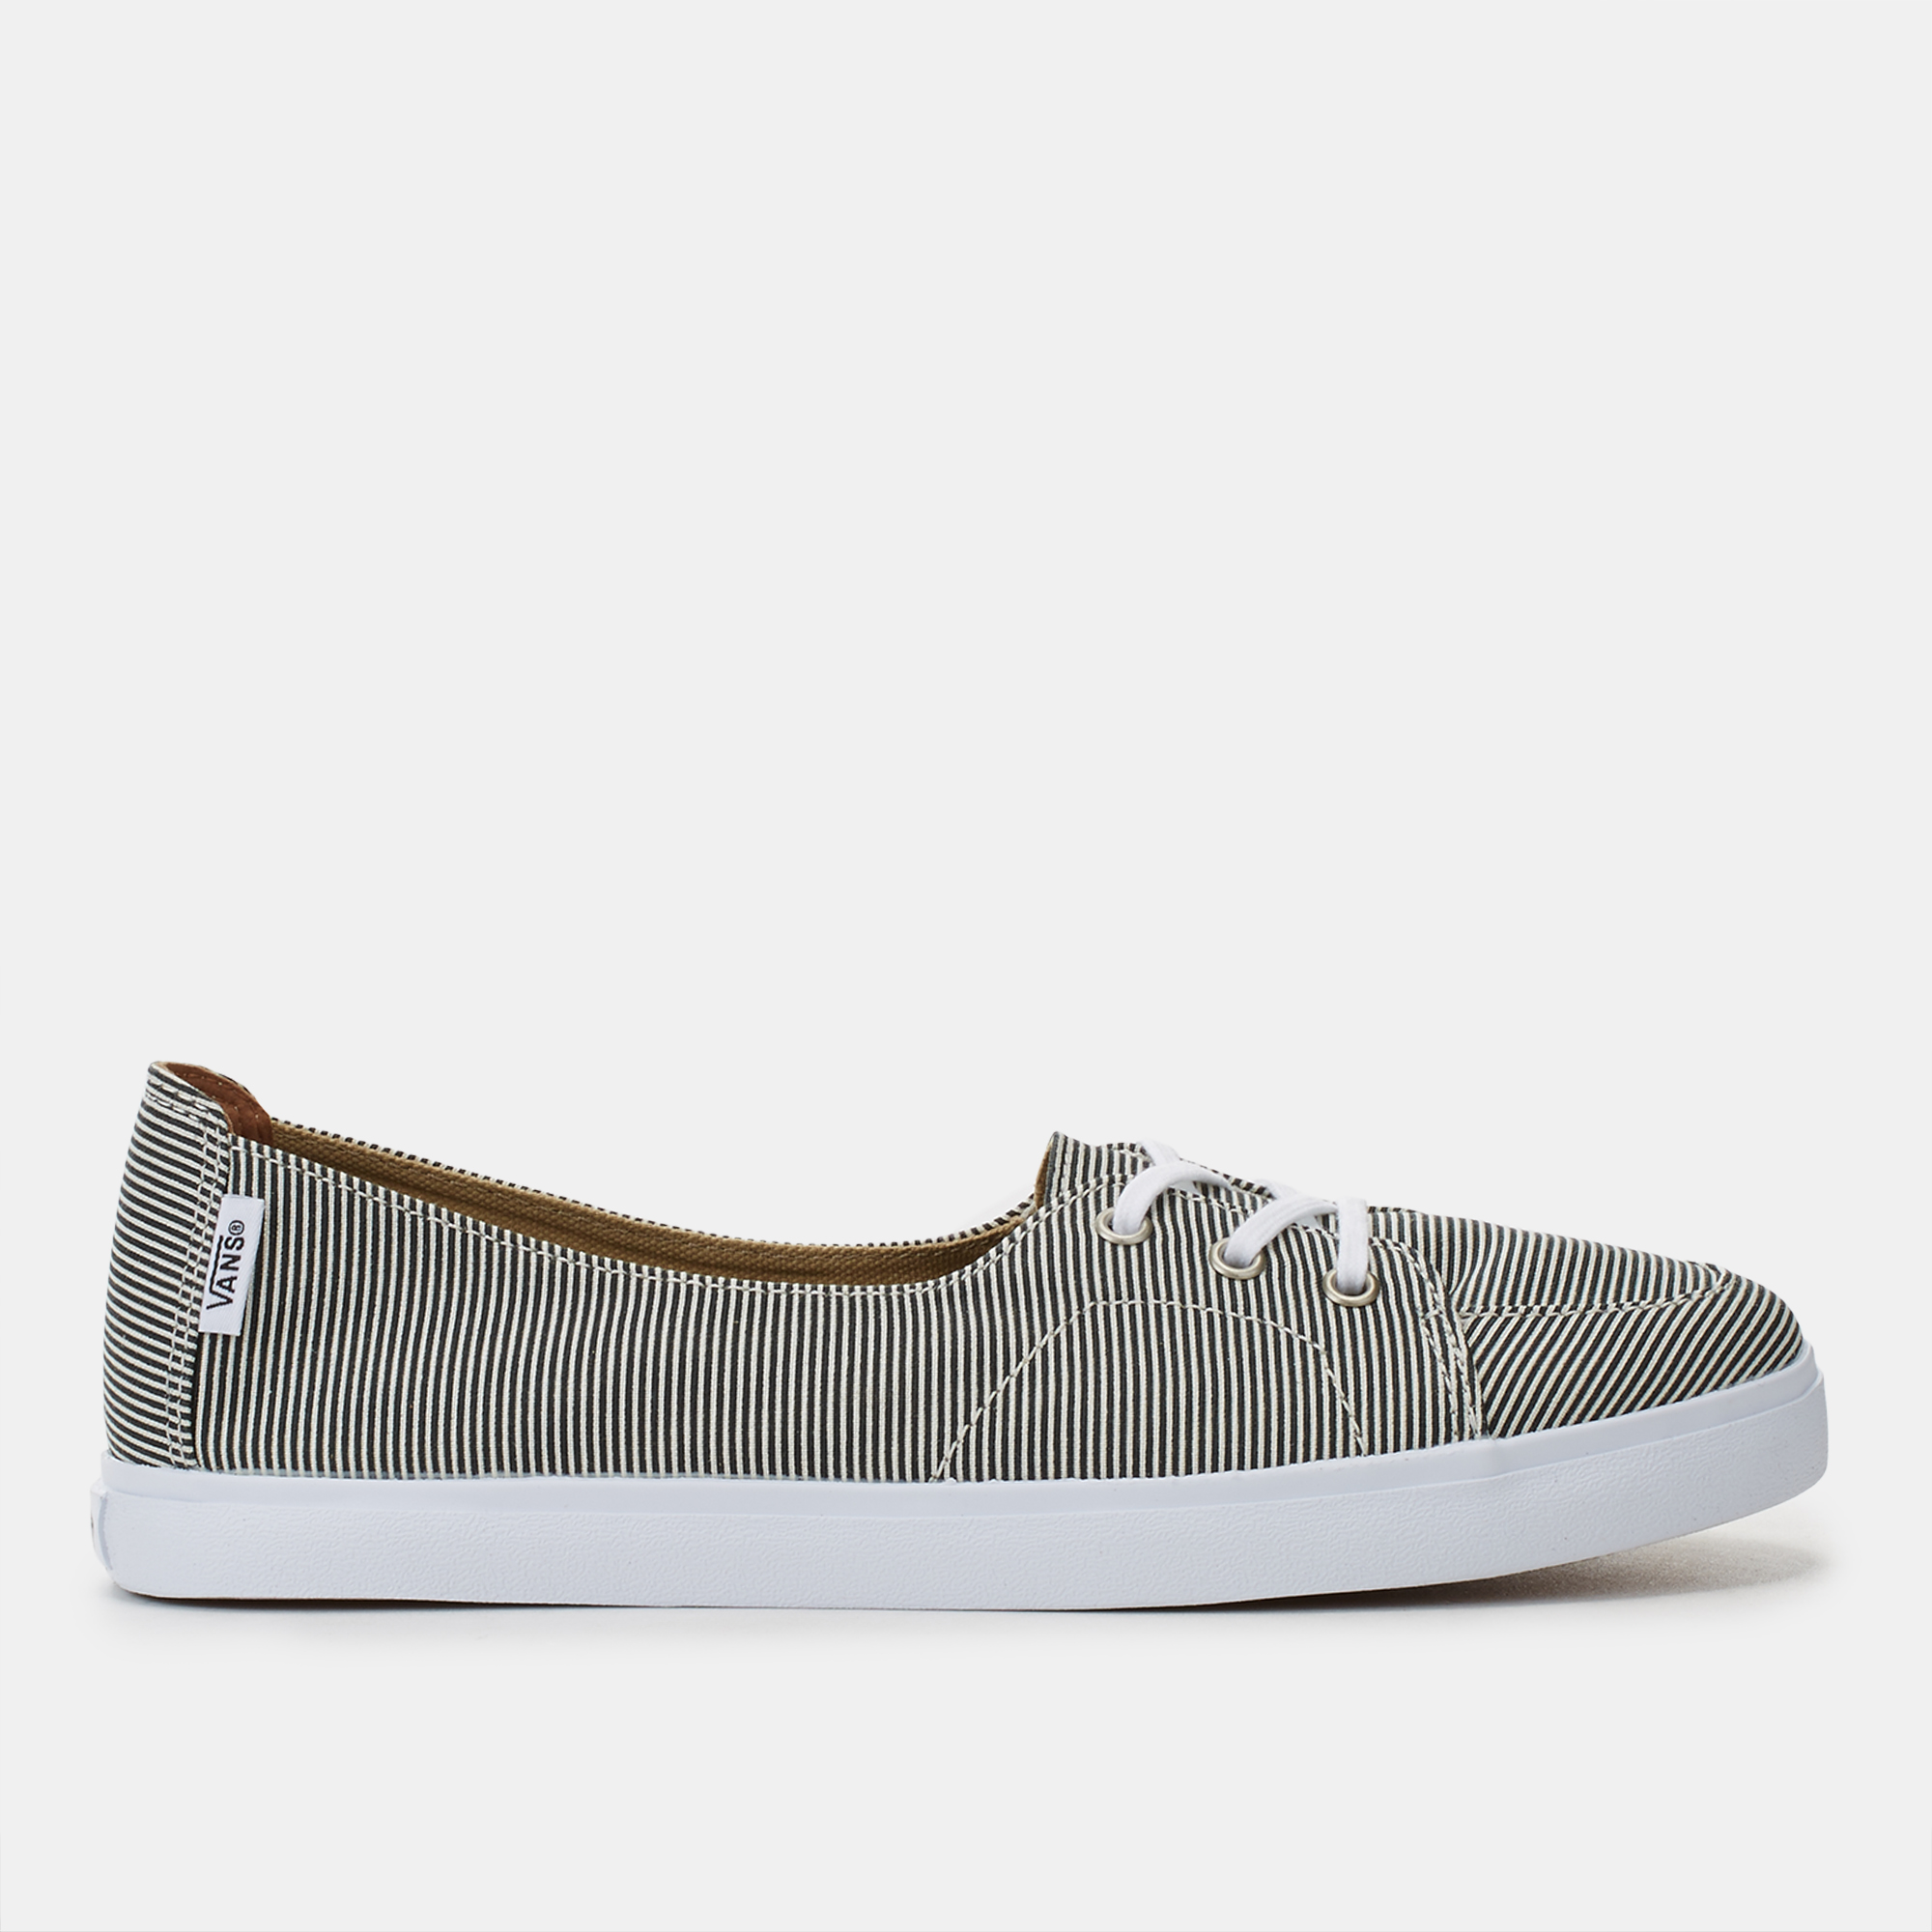 5c354bbe8a2e Shop Grey Palisades SF for Womens by Vans